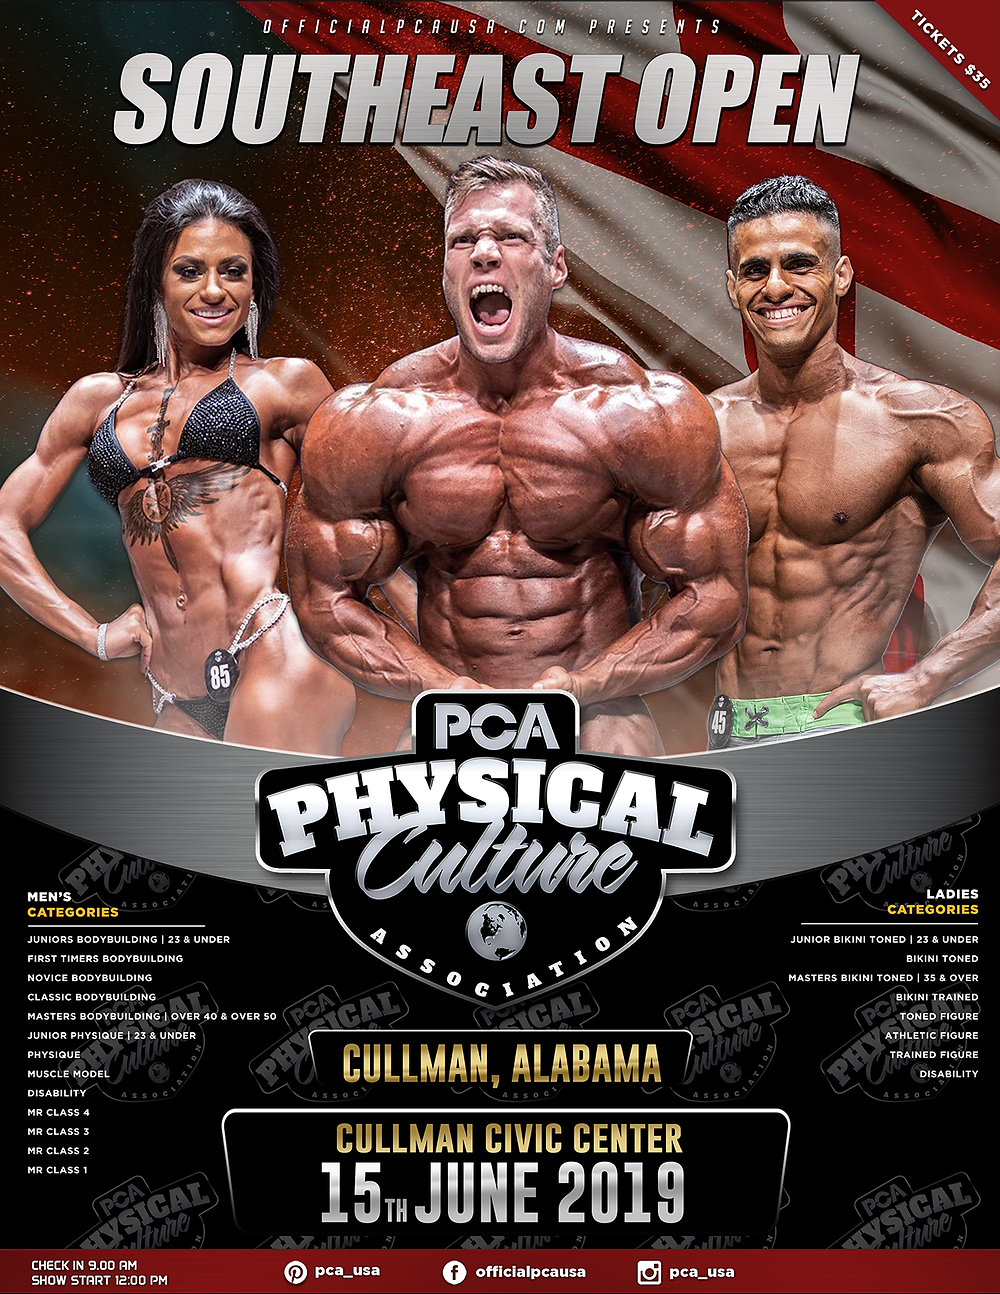 Southeast Open Bodybuilding Poster